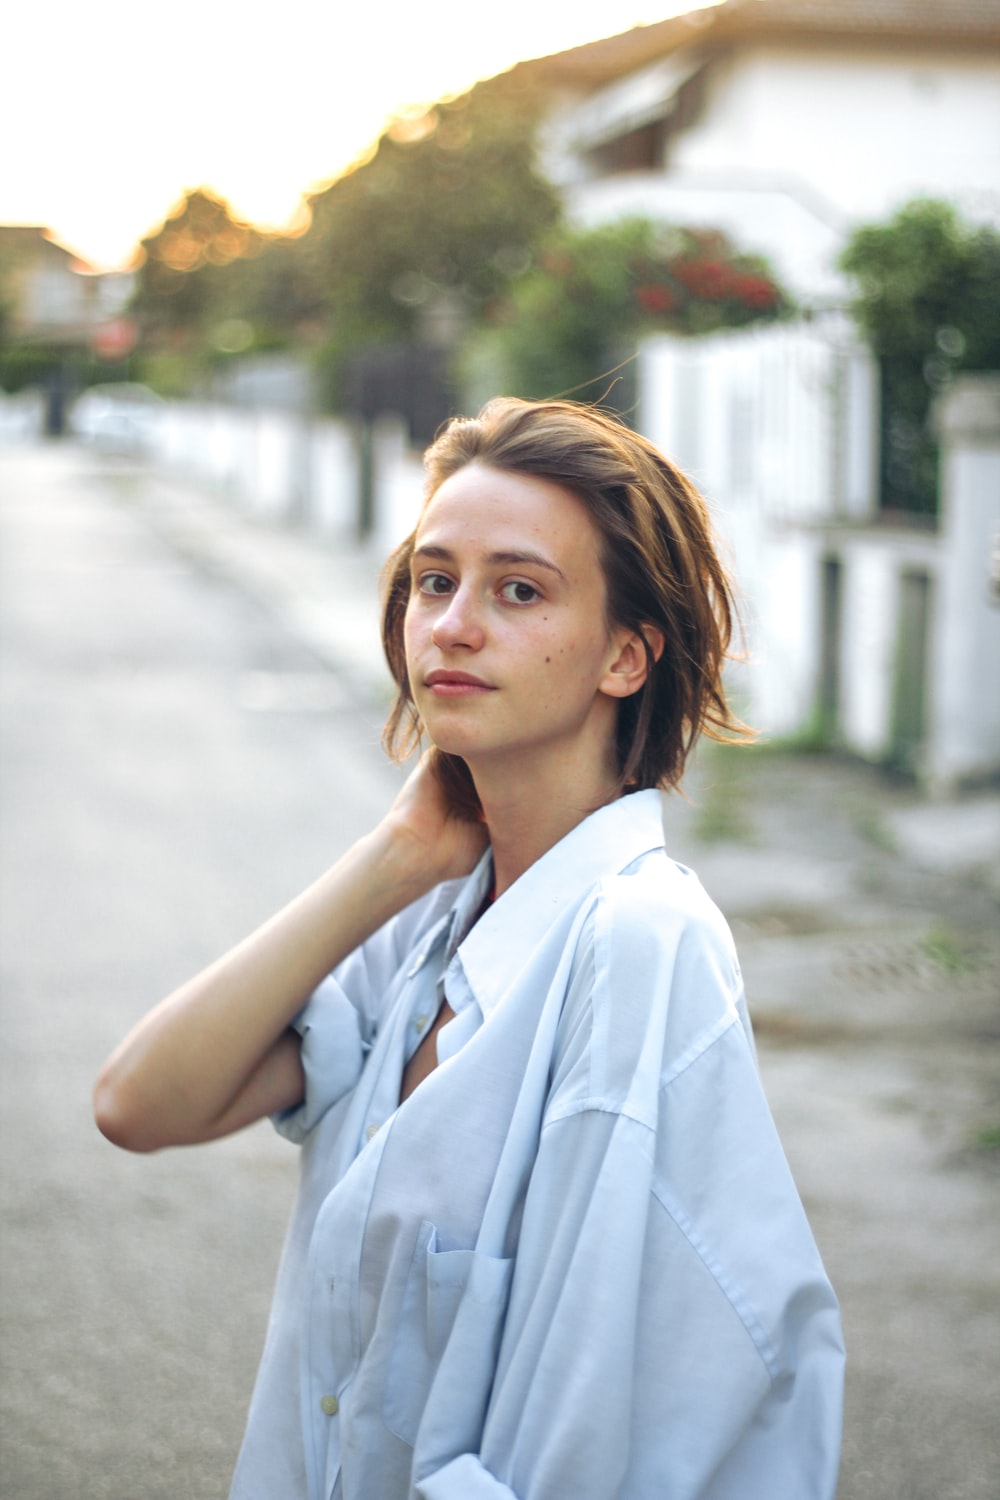 woman in white button up shirt standing on road during daytime